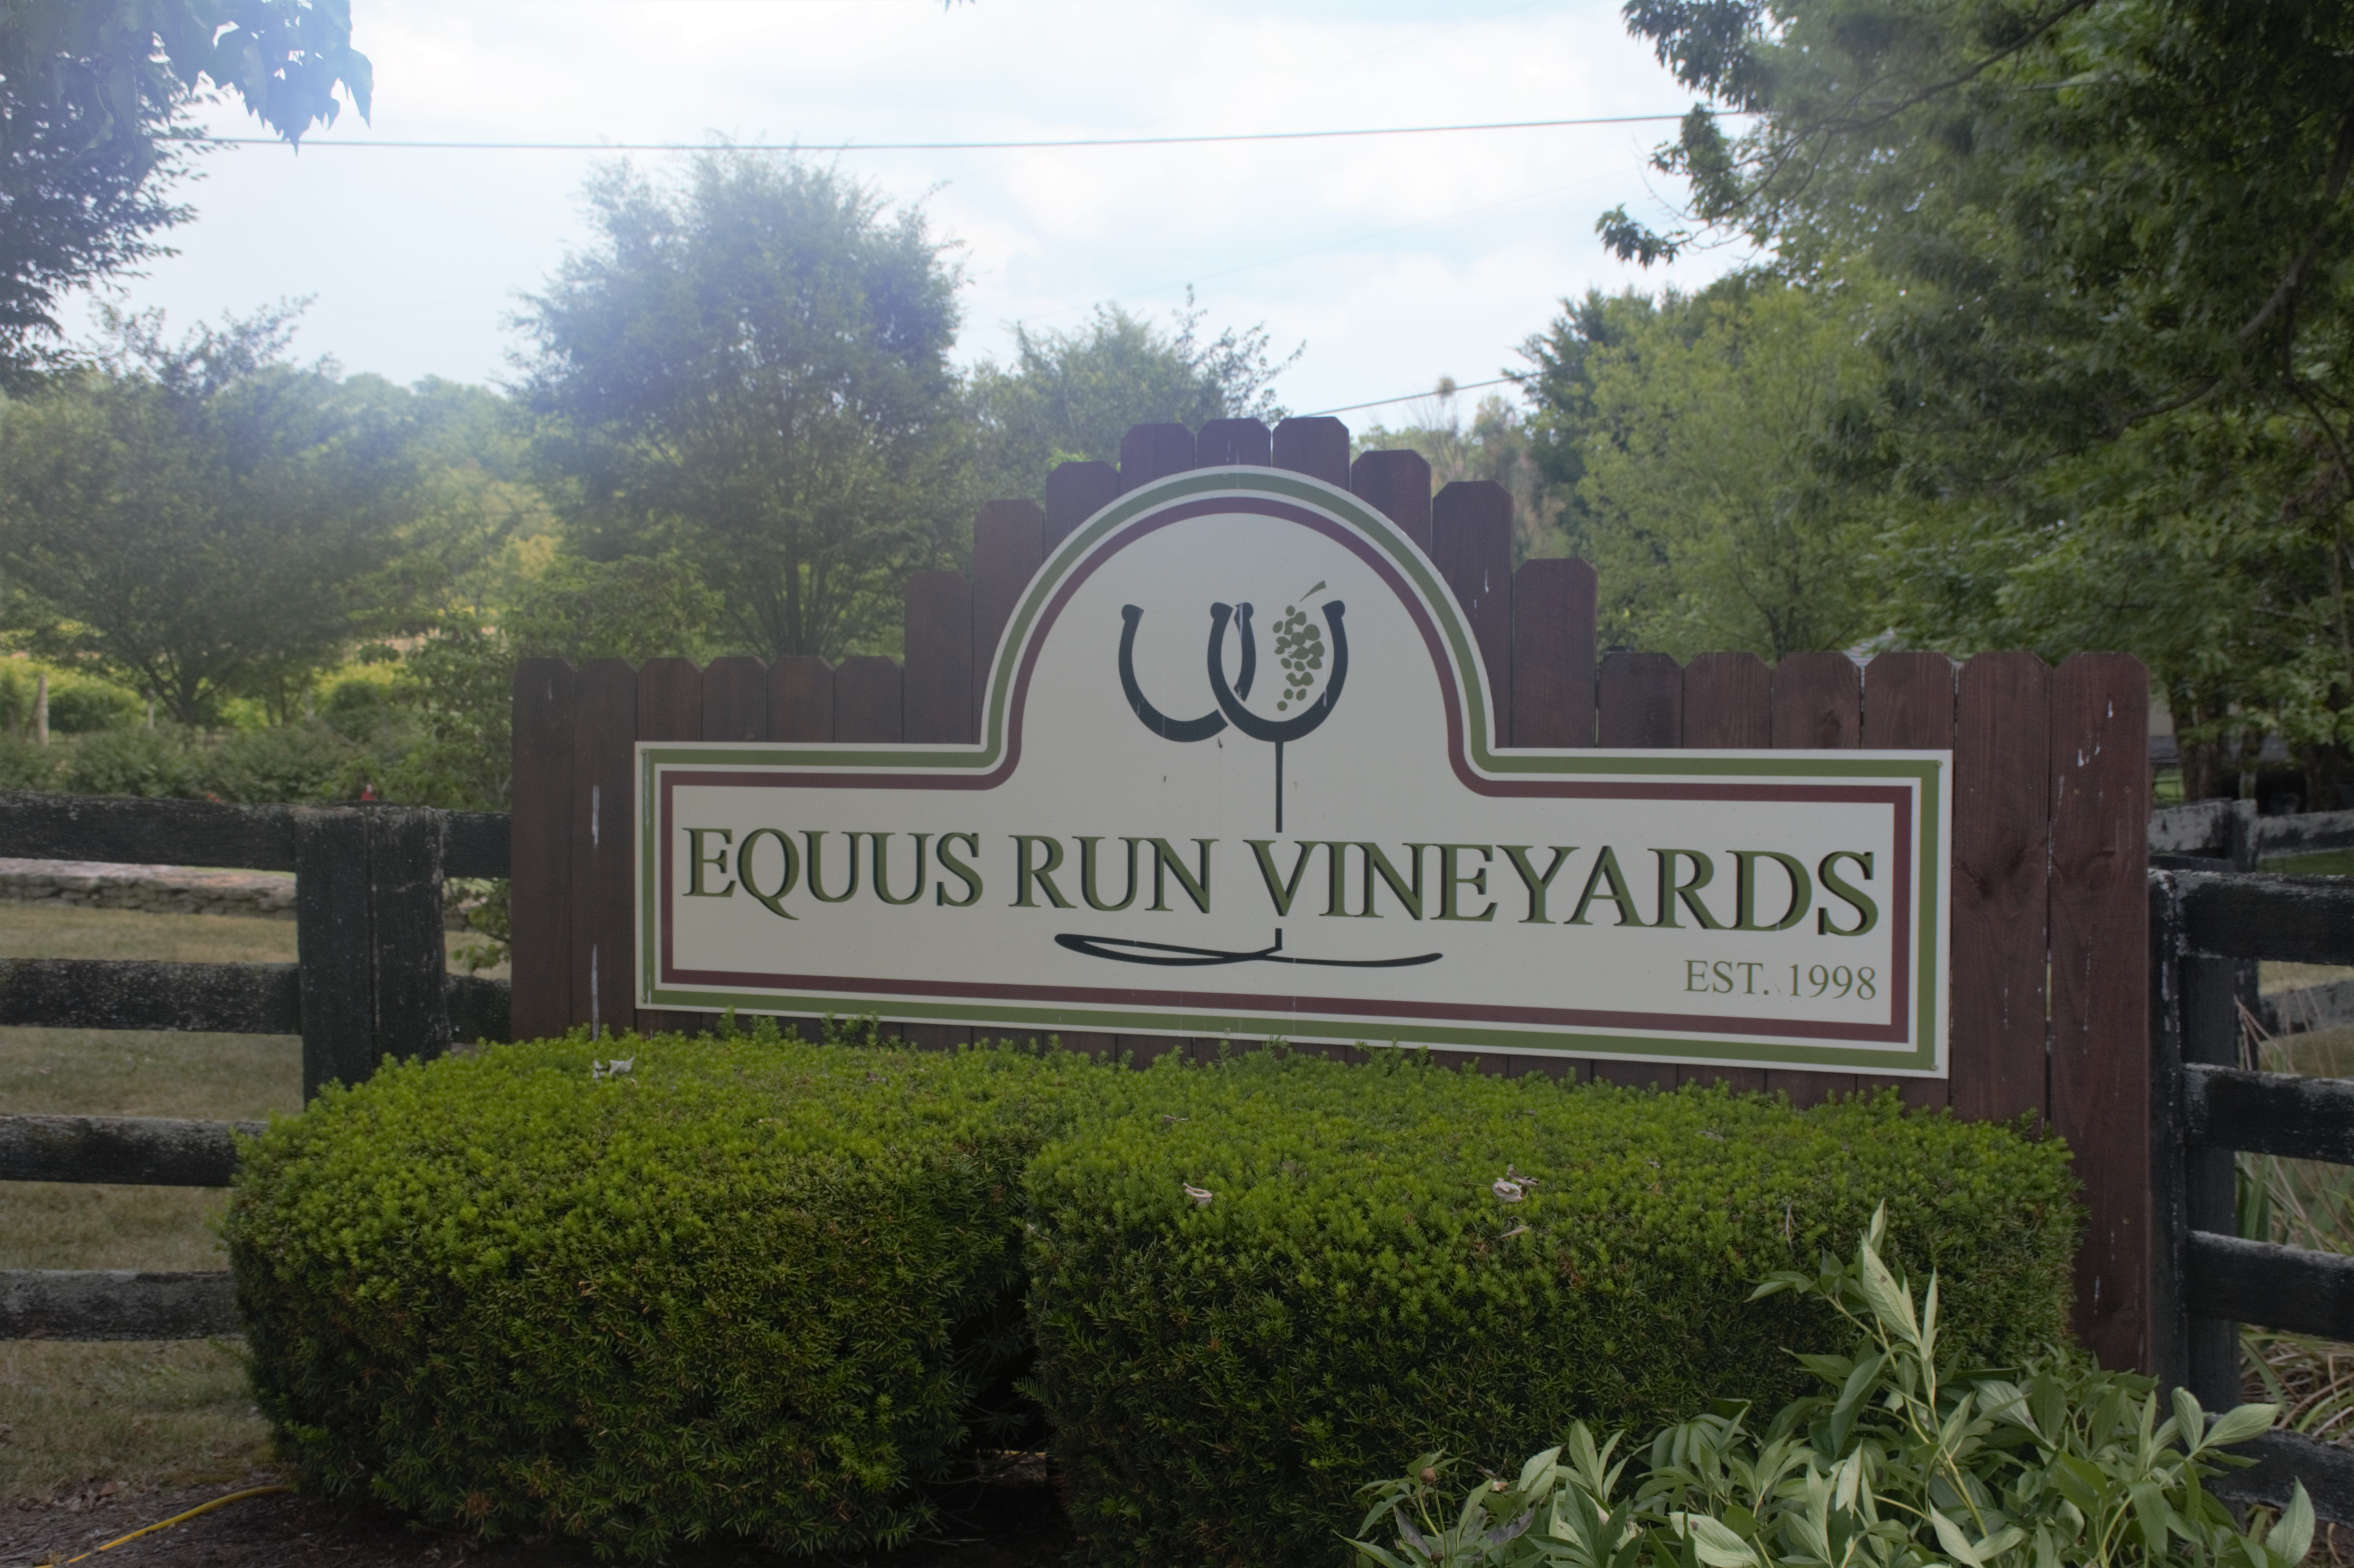 Equus Run Vineyard